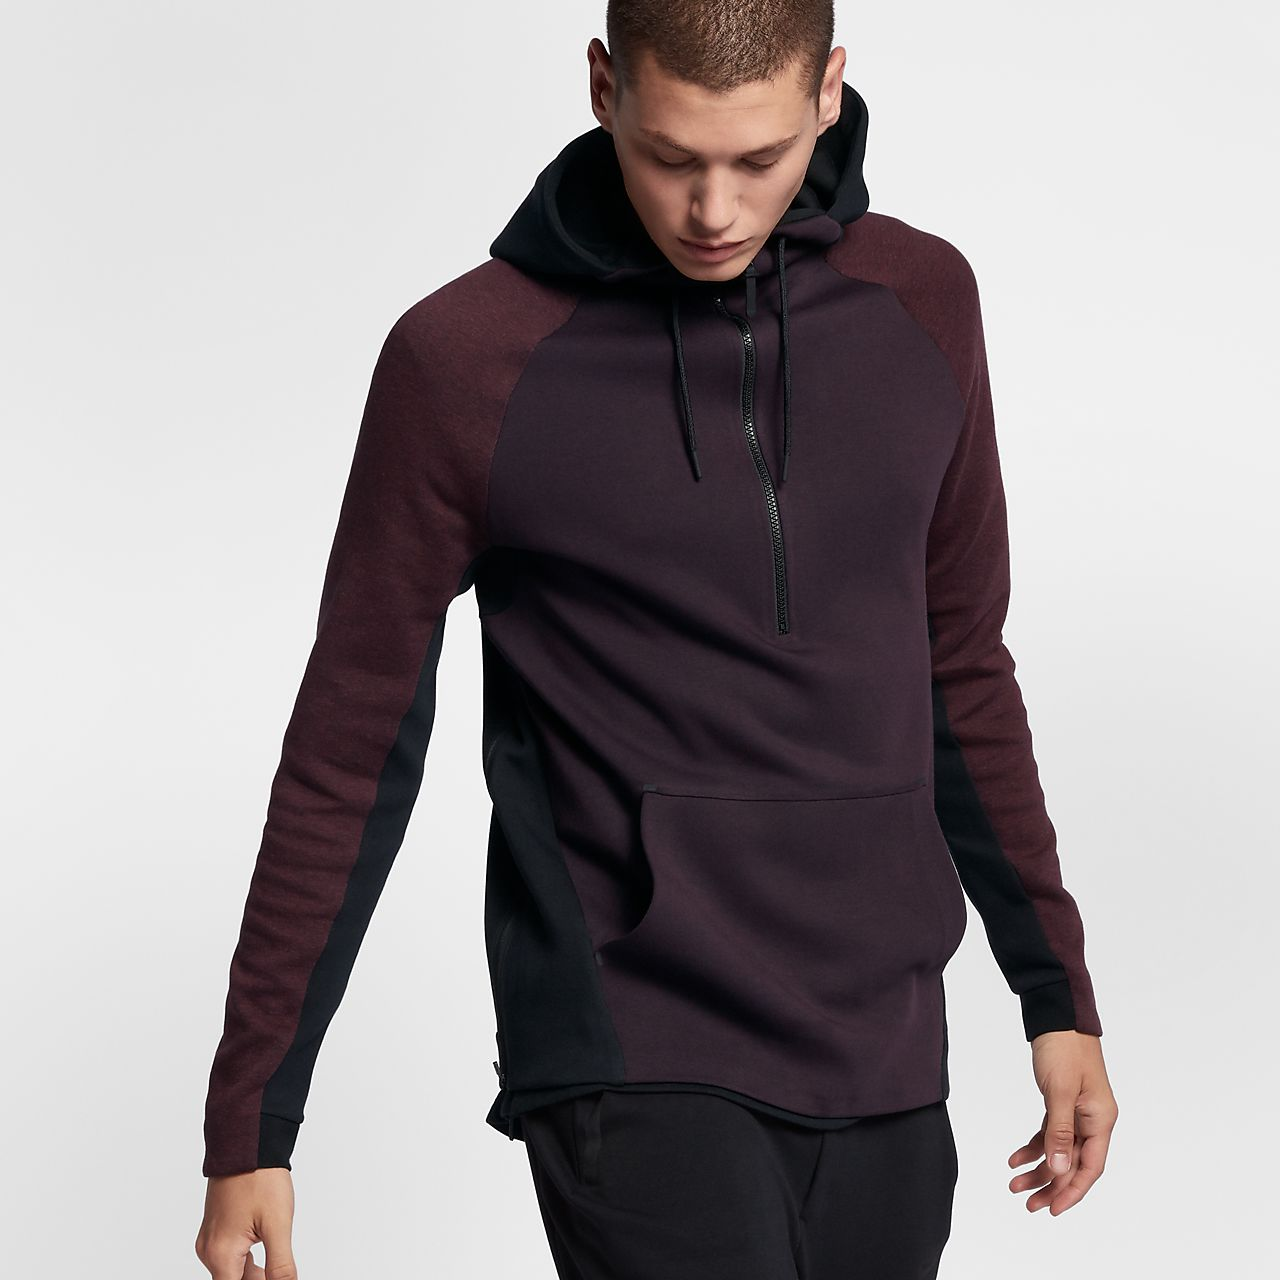 nike sportswear tech fleece men 39 s half zip hoodie au. Black Bedroom Furniture Sets. Home Design Ideas